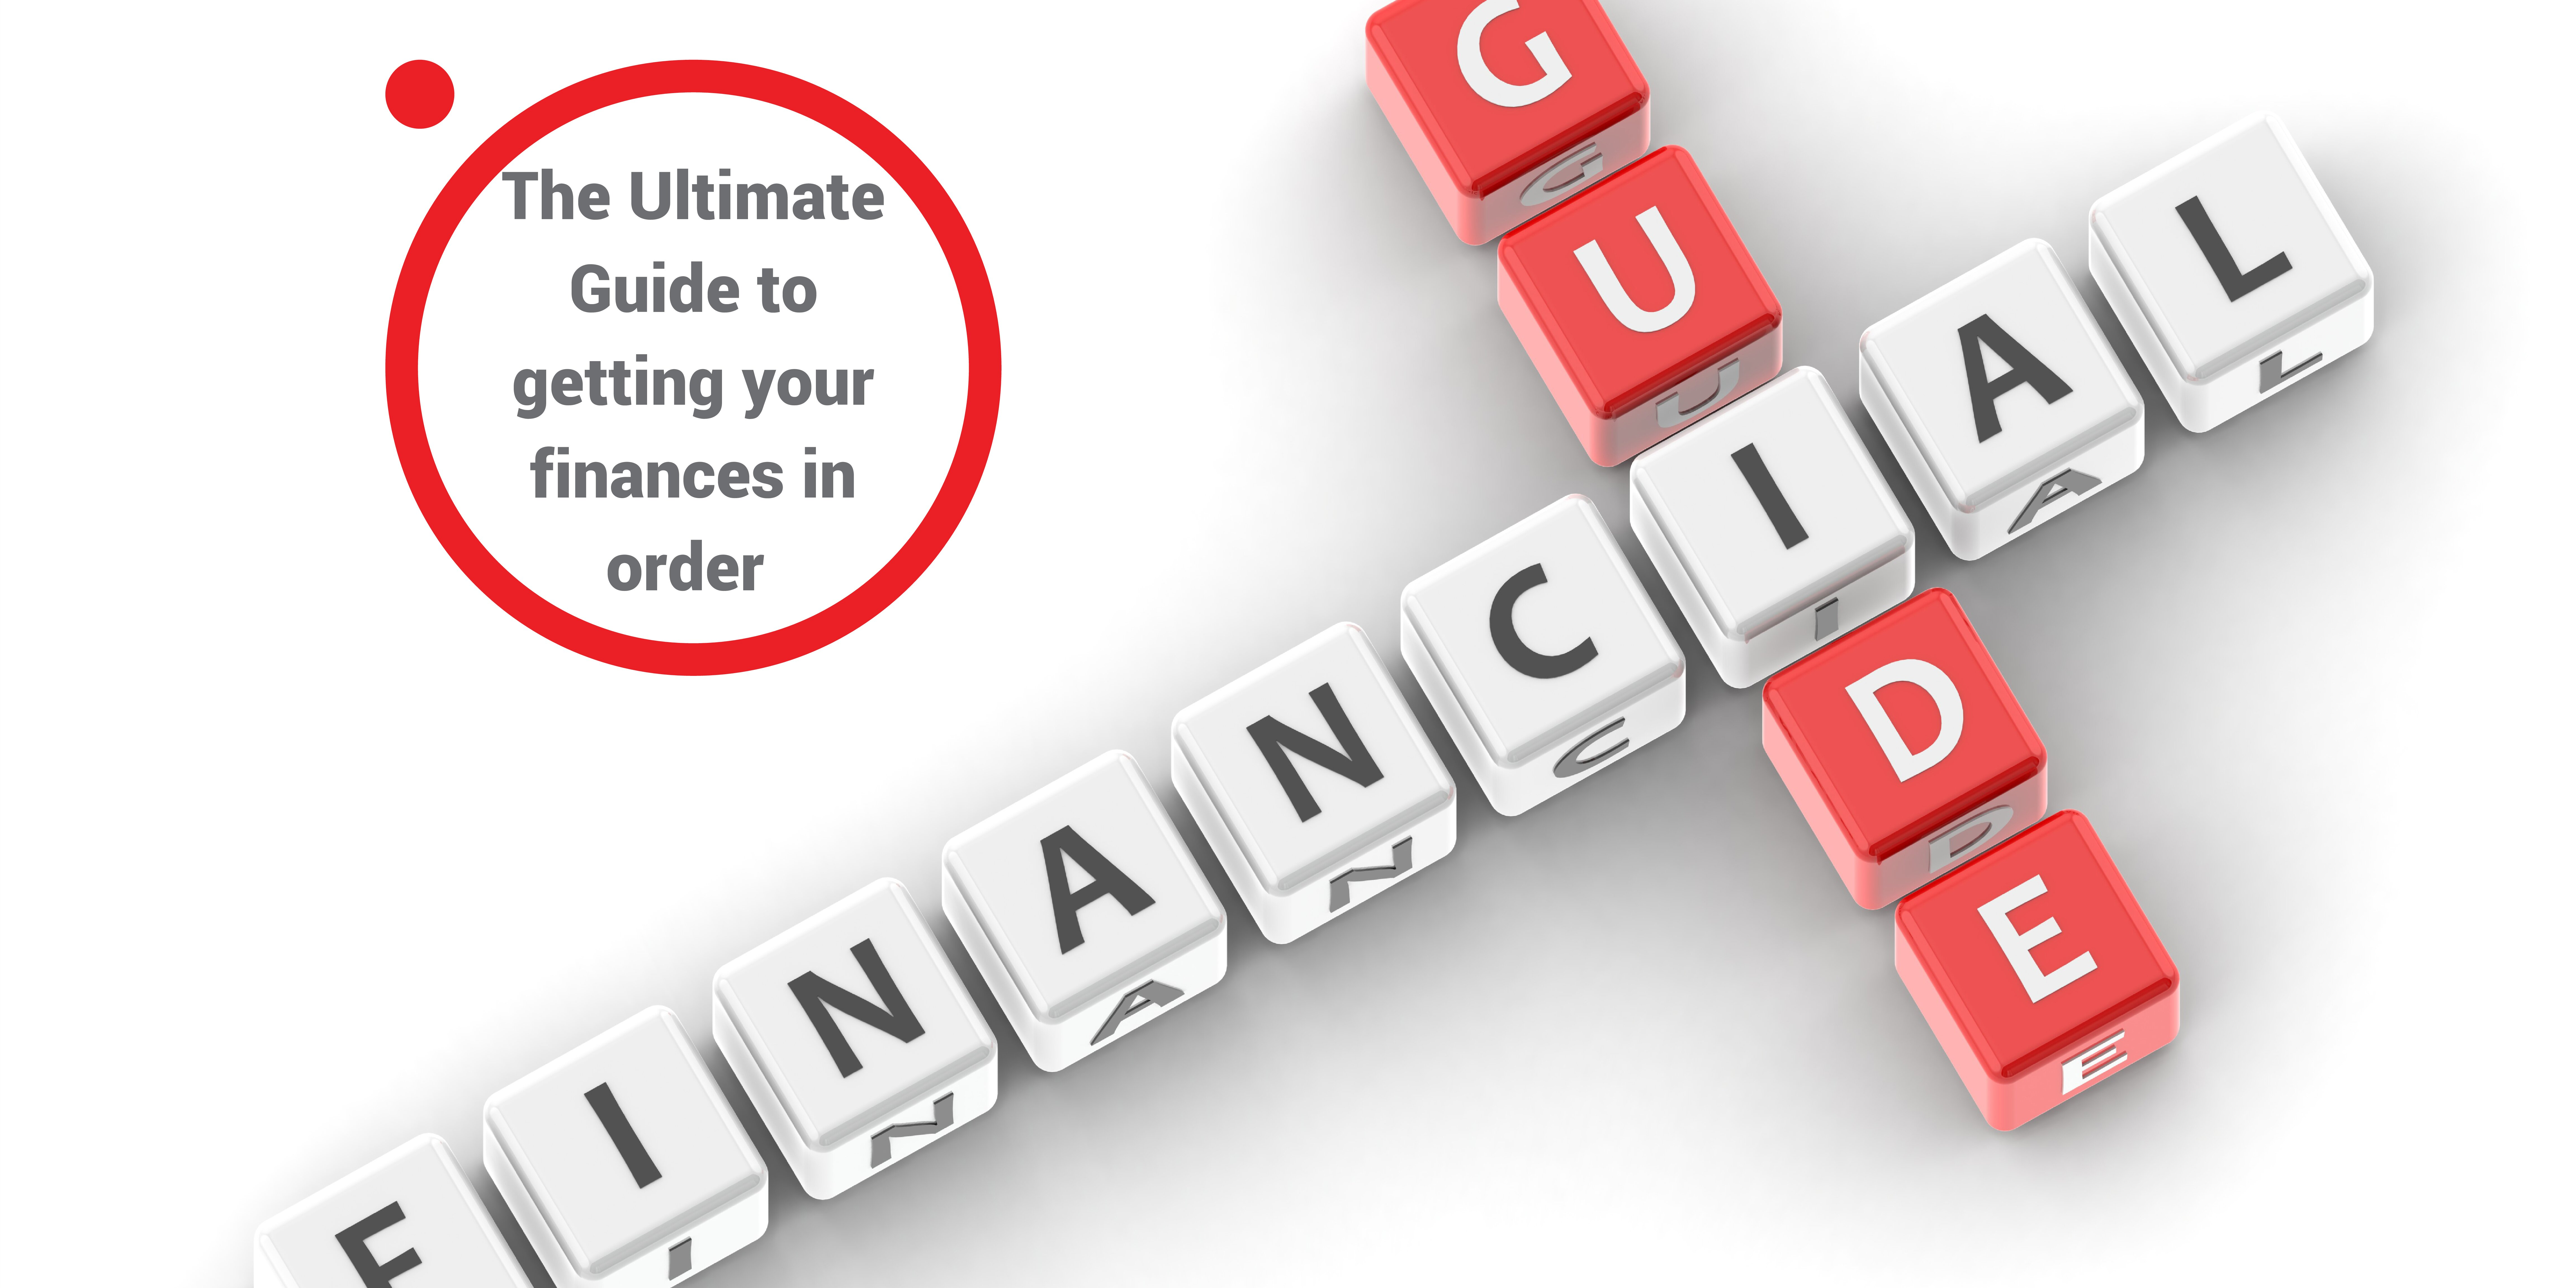 The Ultimate Guide to getting your Finances in Order